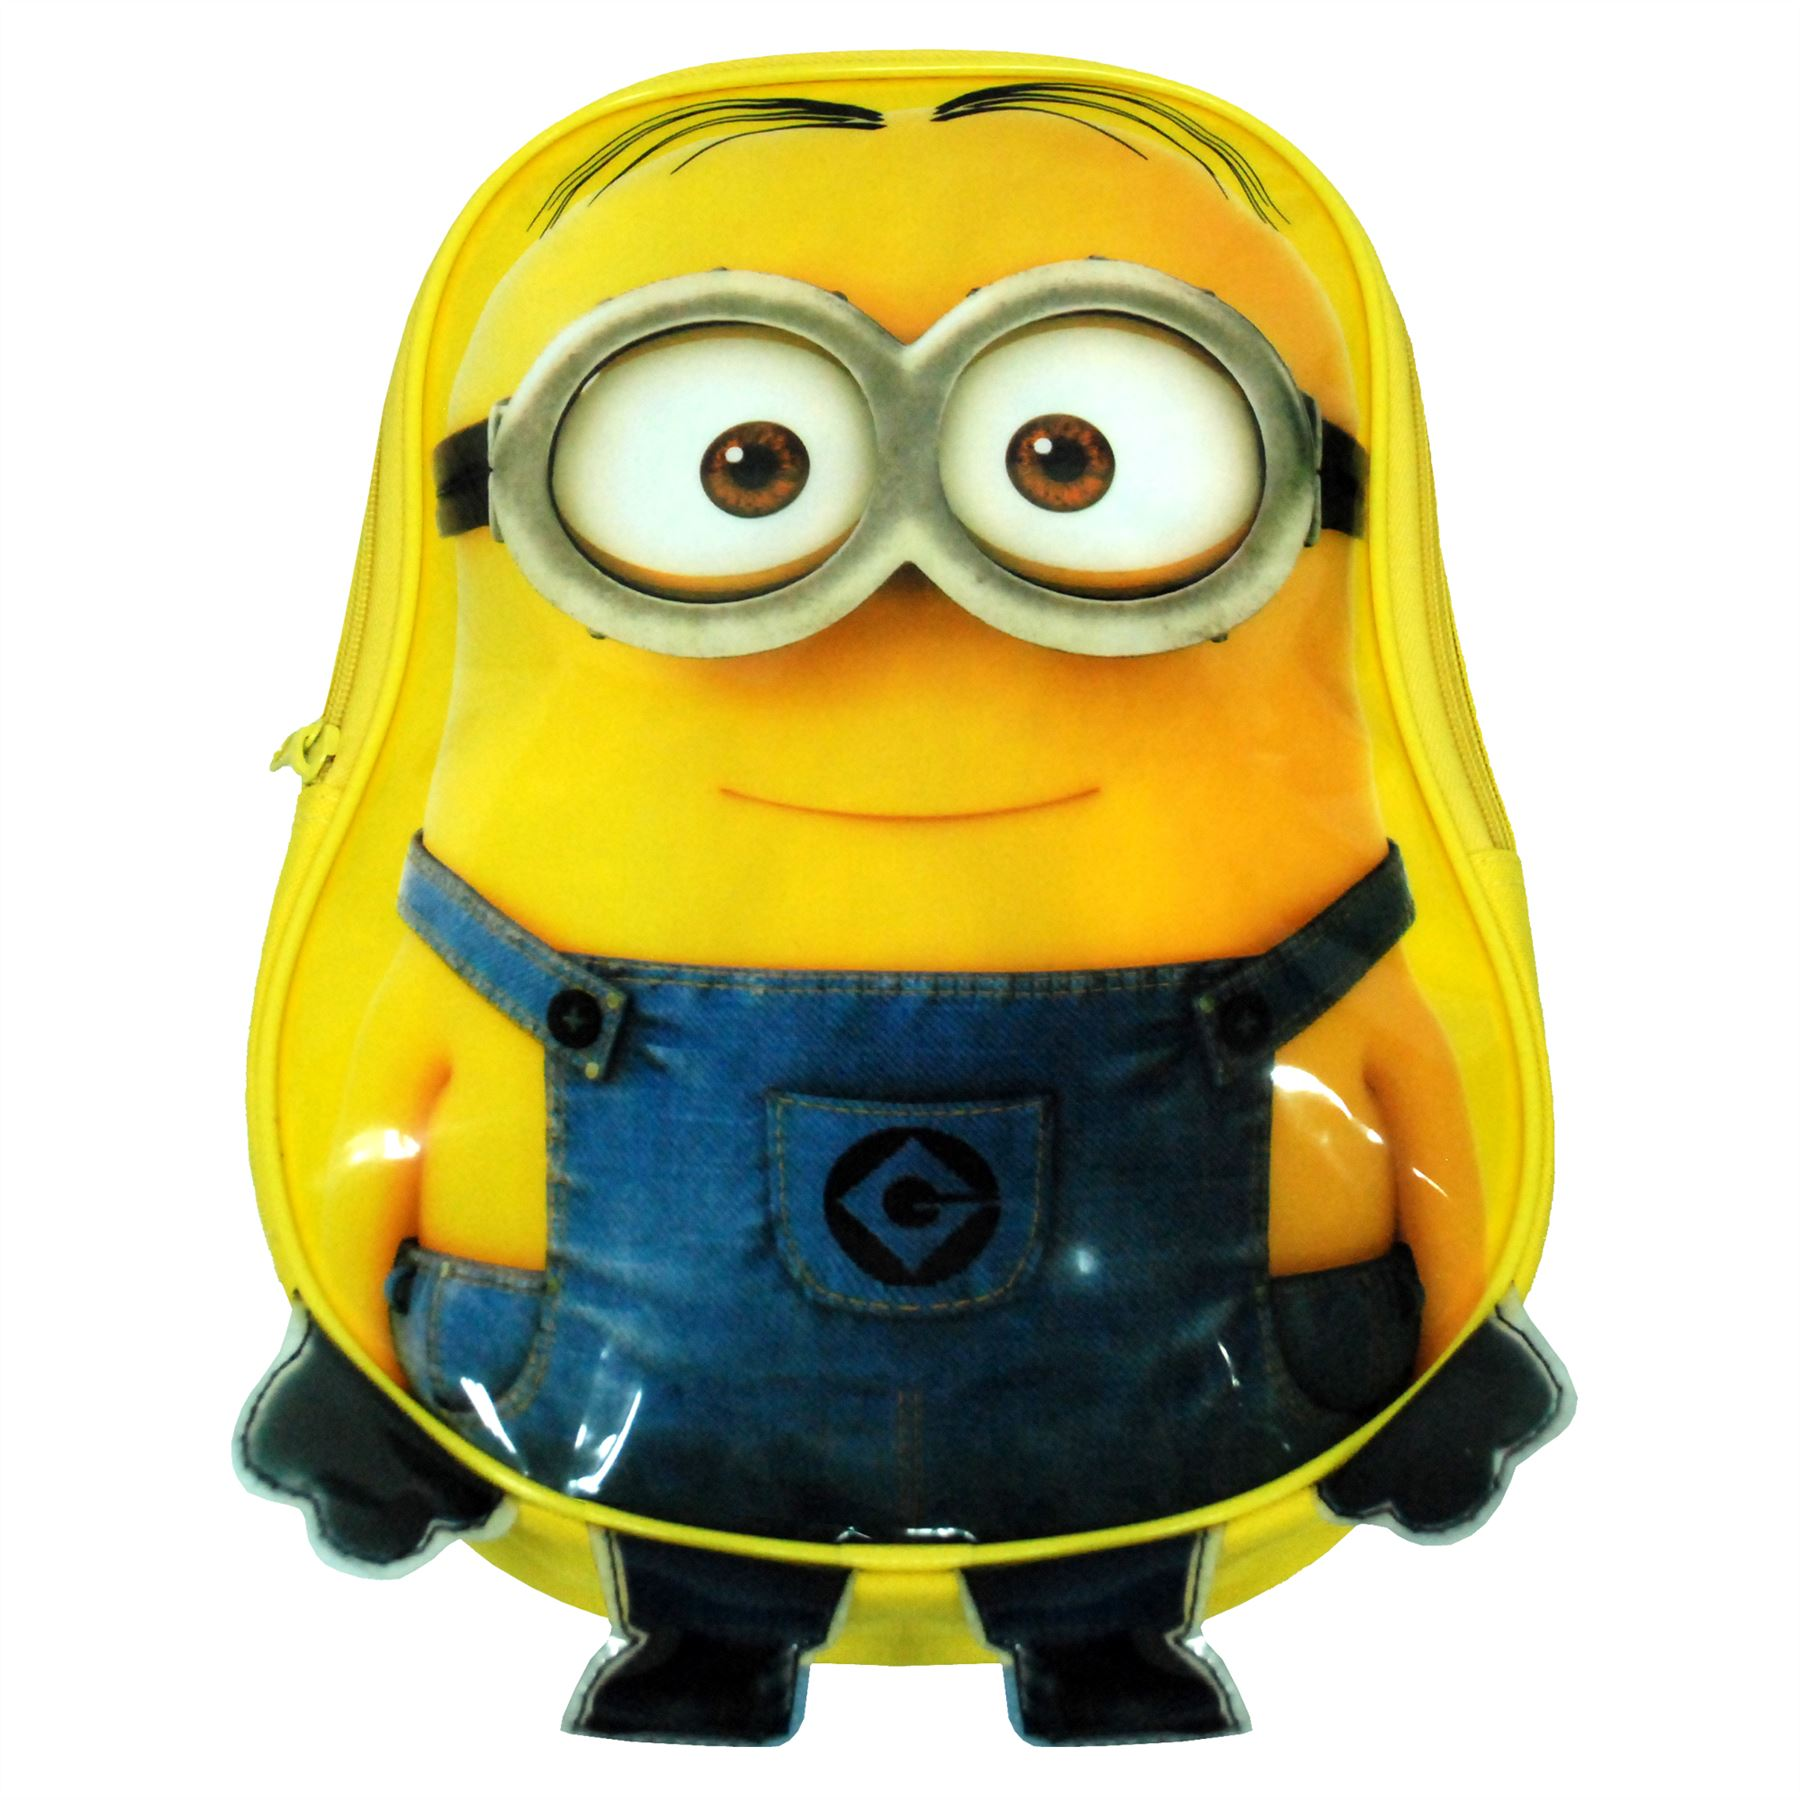 Despicable Me  3D Minions  Character Novelty Backpack Dangling Arm   Legs  Design 822c53f7a13fd